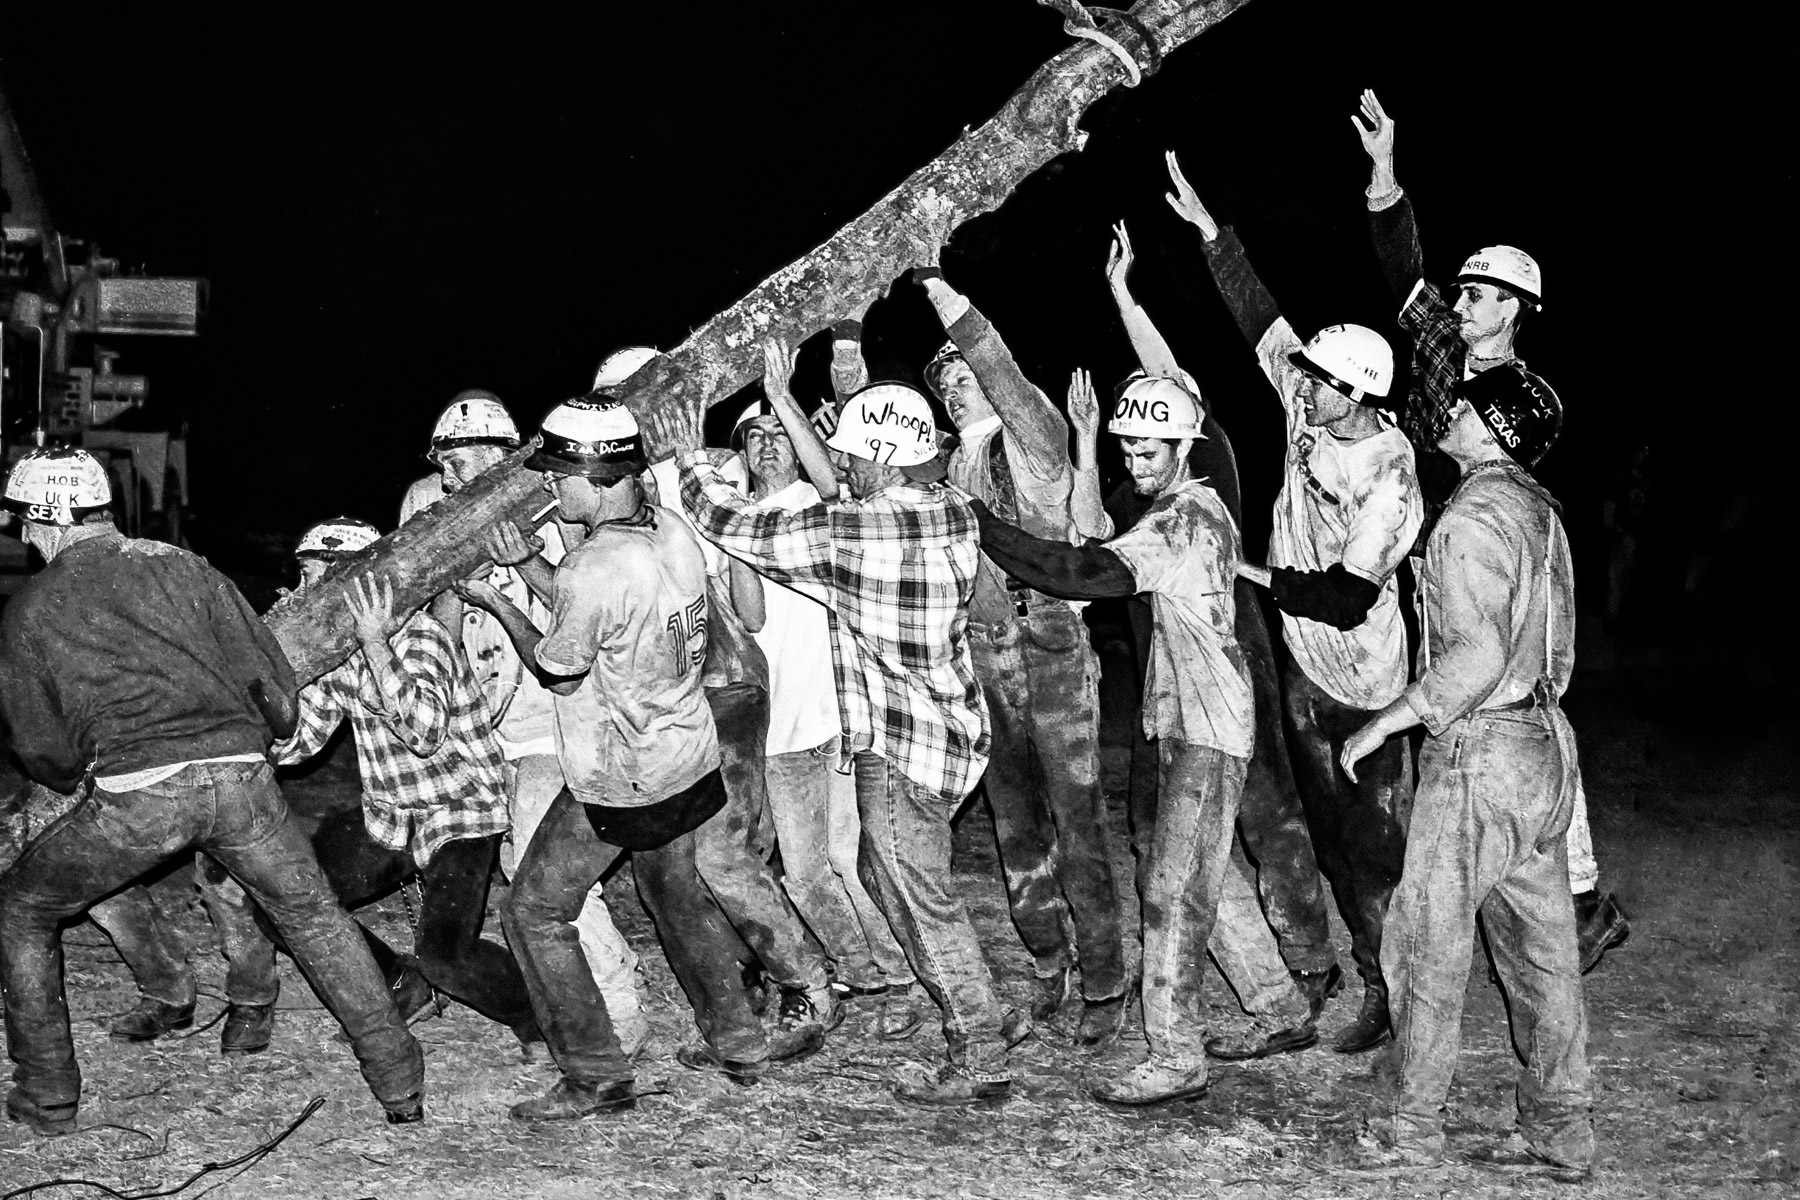 Students erect a log at 1997's Texas Aggie Bonfire, Texas A&M University, College Station.